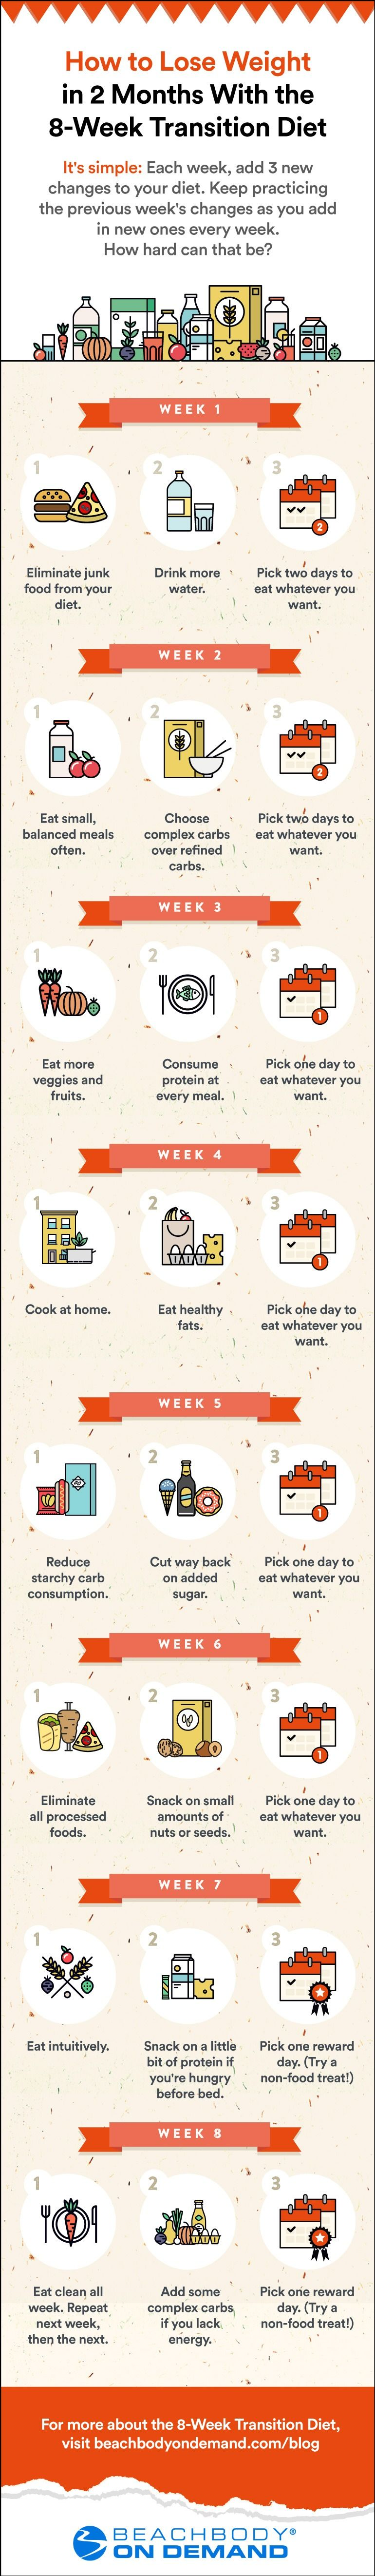 Pin on Diet and Nutrition